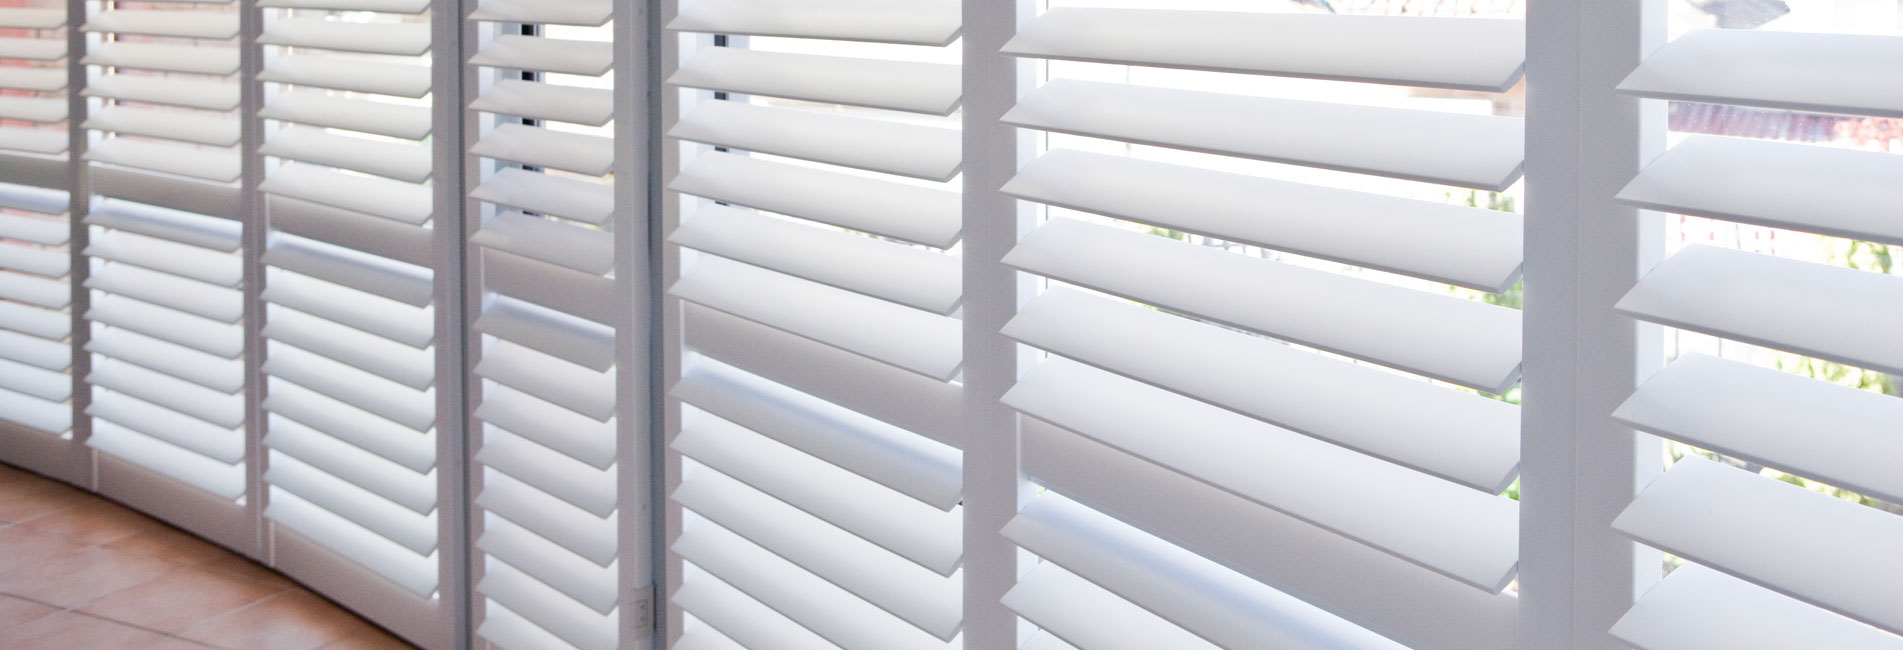 Plantation Shutters Willowdale, Blinds Edmondson Park, Affordable Shutters Henricus Park, Budget Shutters Harrington Grove